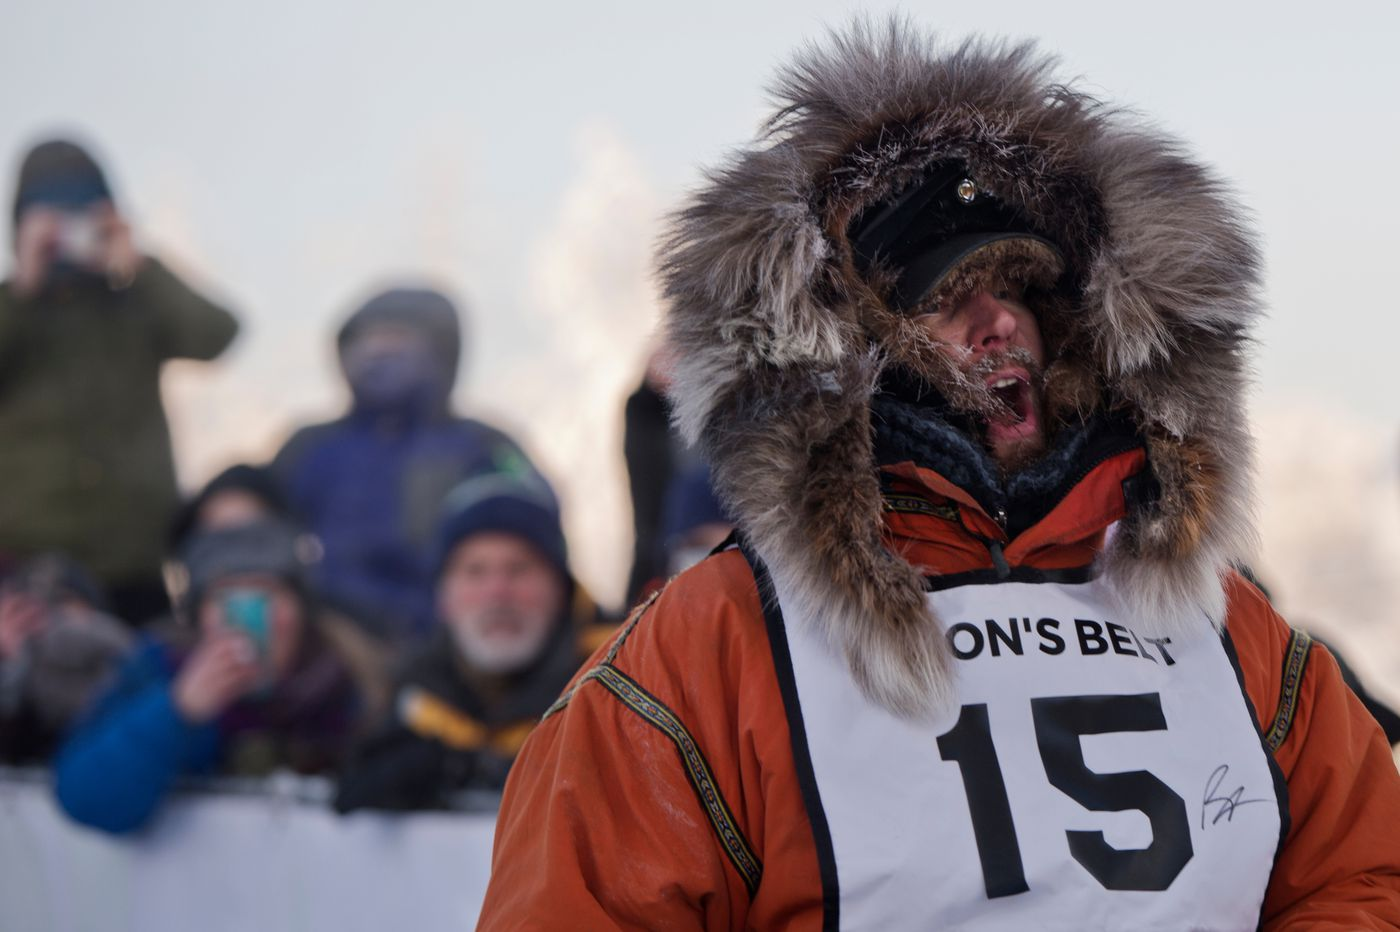 Brent Sass calls for his team to go during at start of the Yukon Quest International Sled Dog Race. (Marc Lester / Anchorage Daily News)